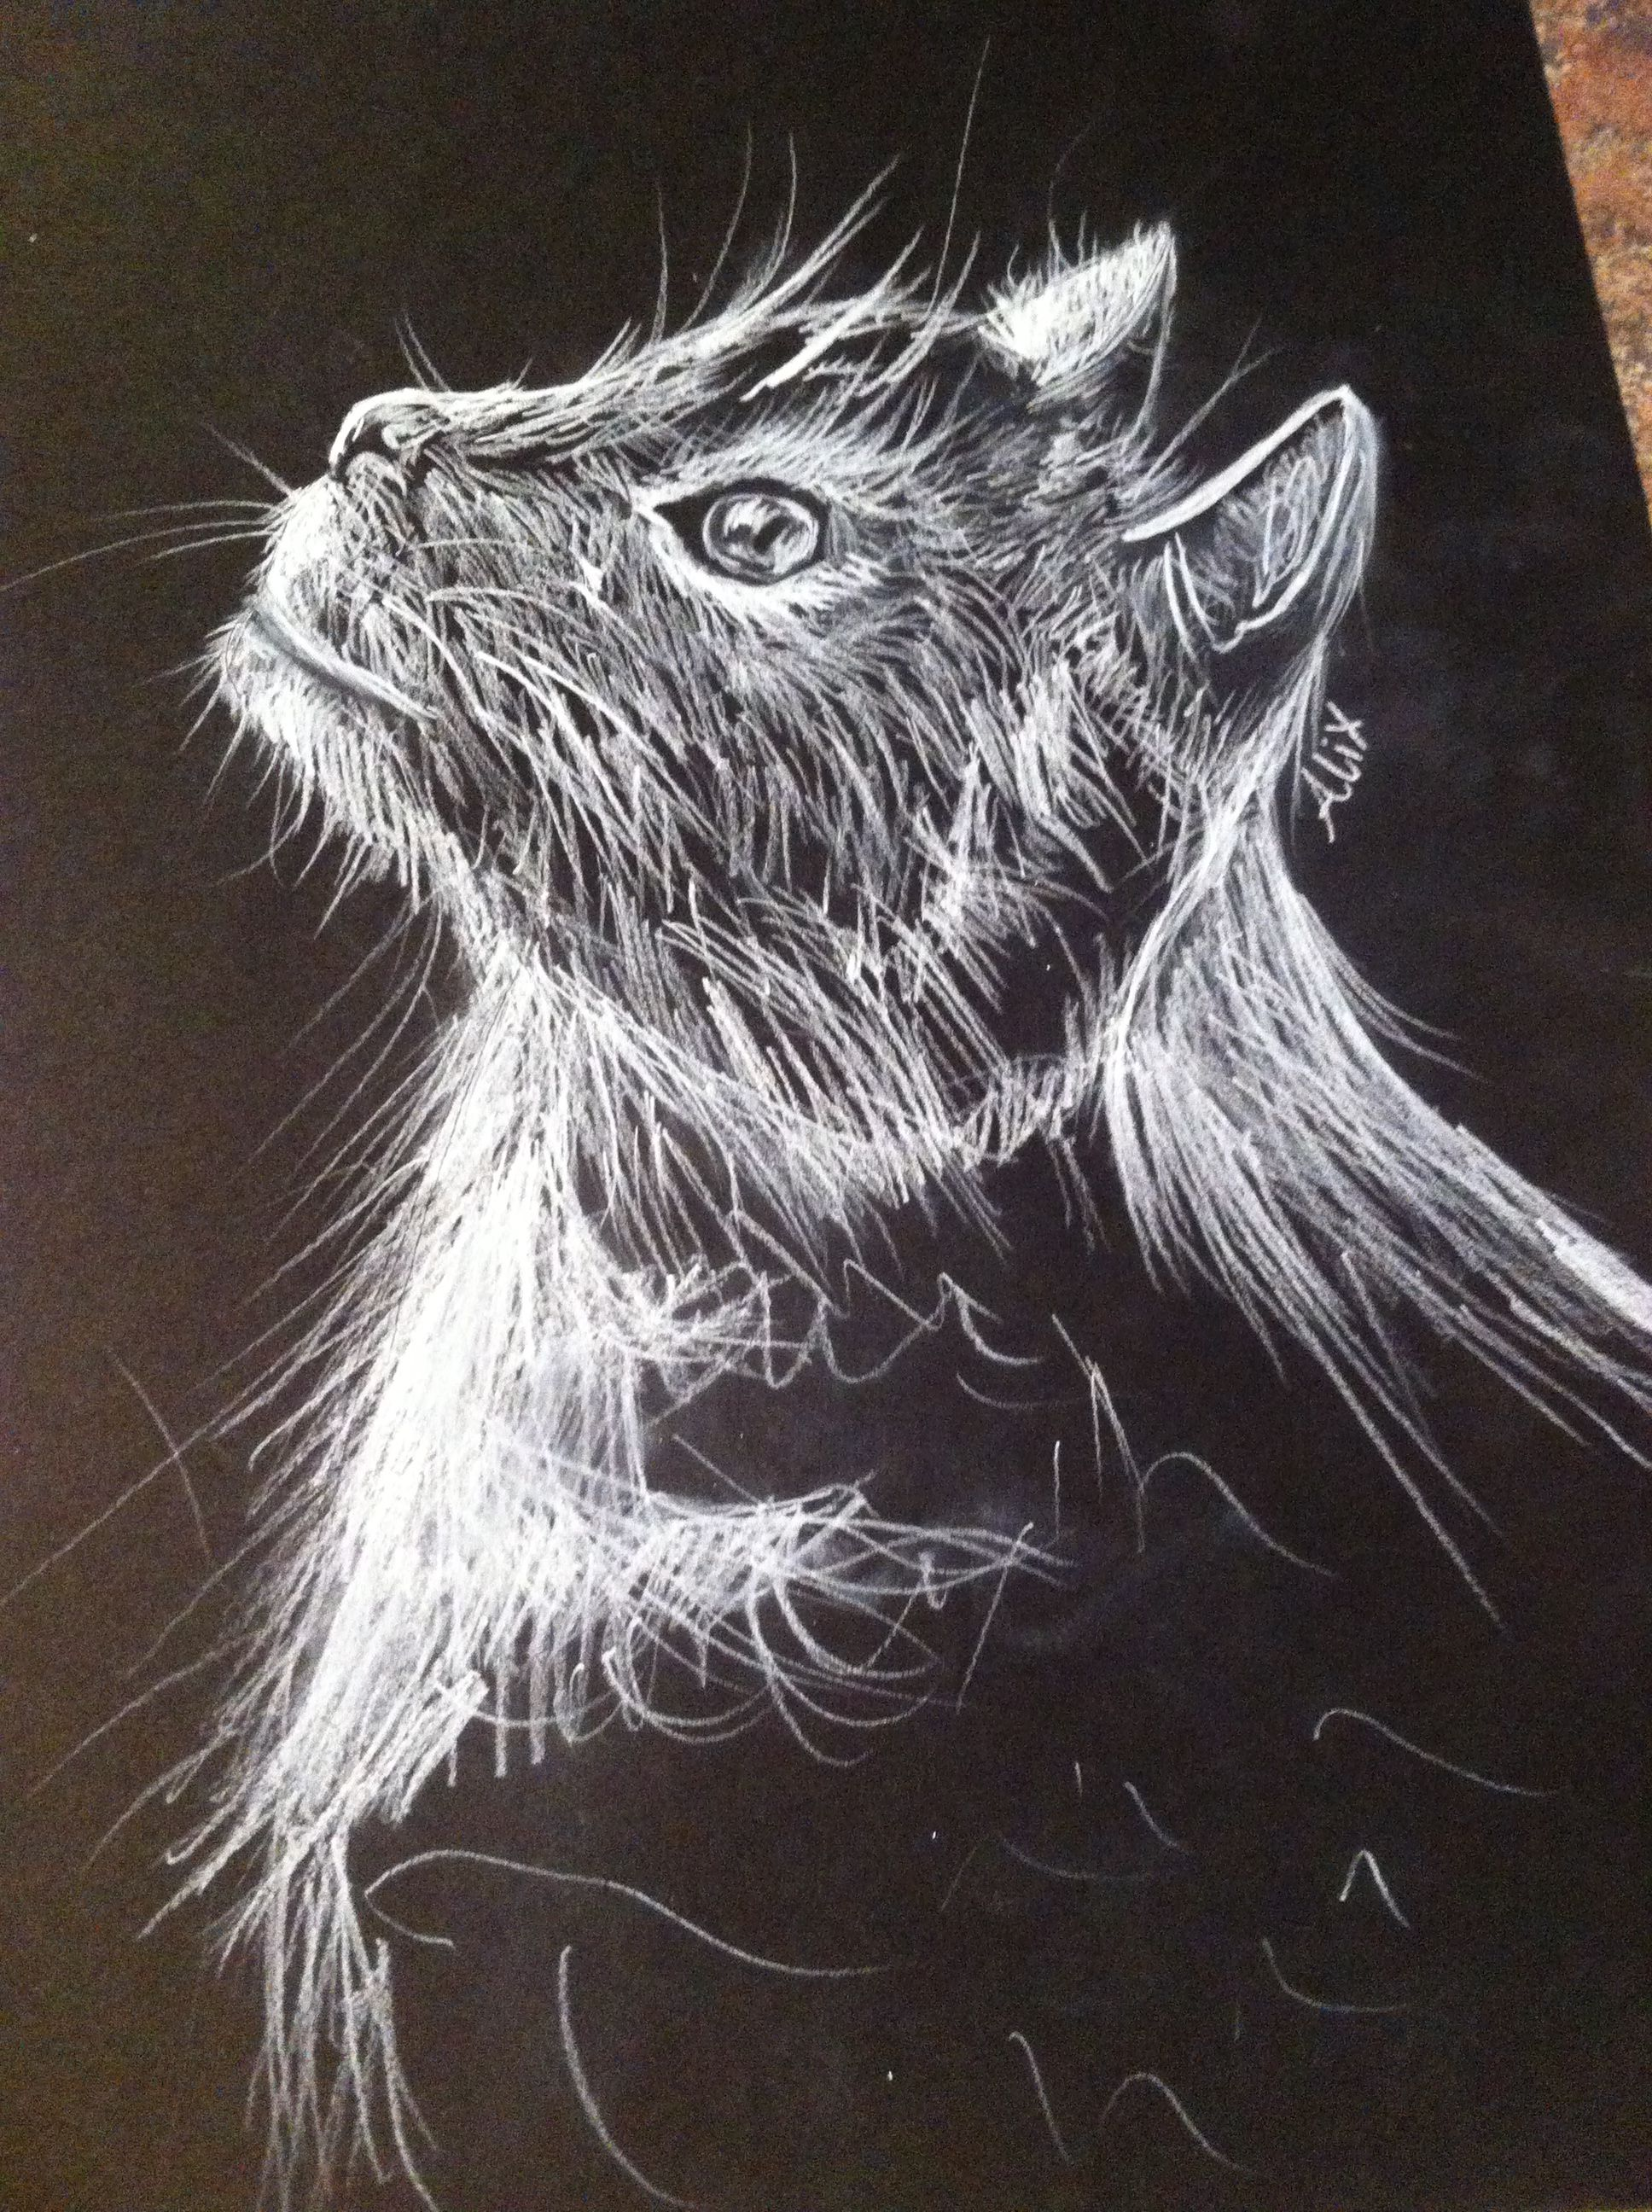 Cat drawing white charcoal on black paper